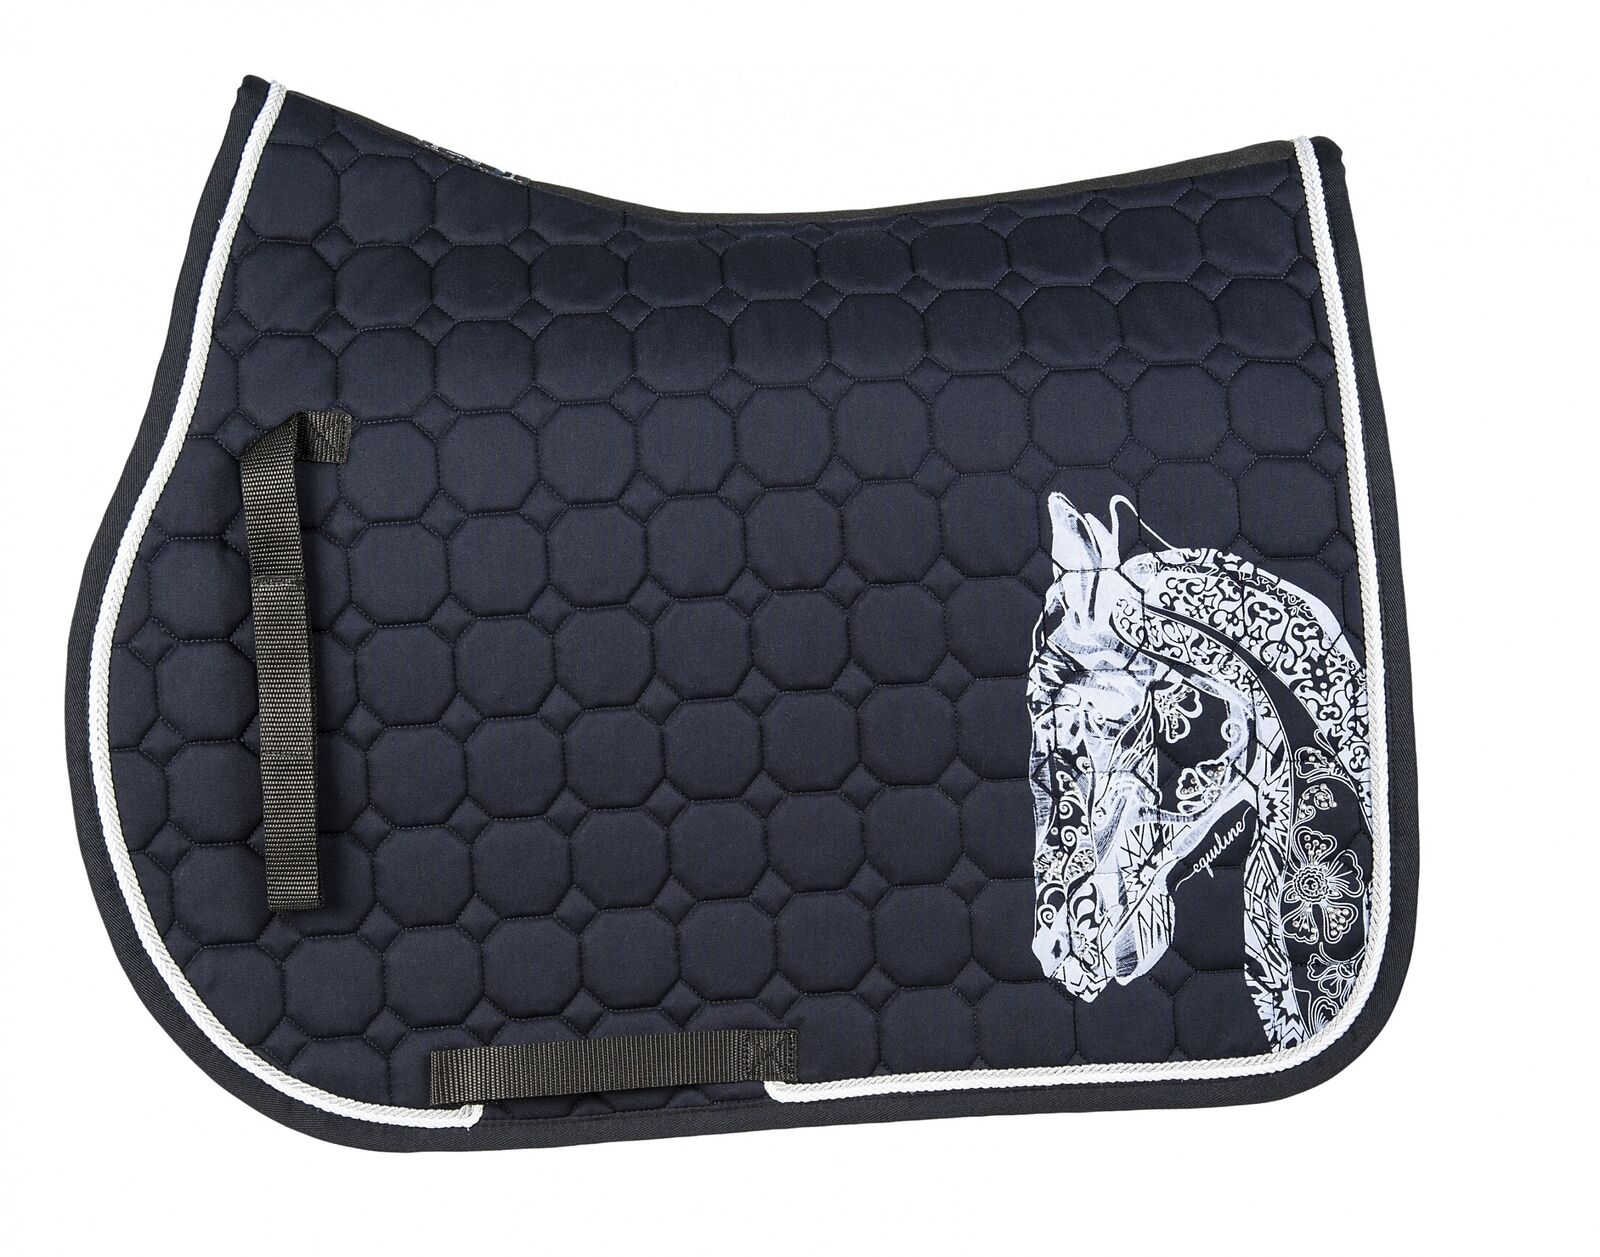 Equiline HOLLY HORSE OCTAGONE SADDLE CLOTH ALUMINIUM S/S 18 18 S/S 180689